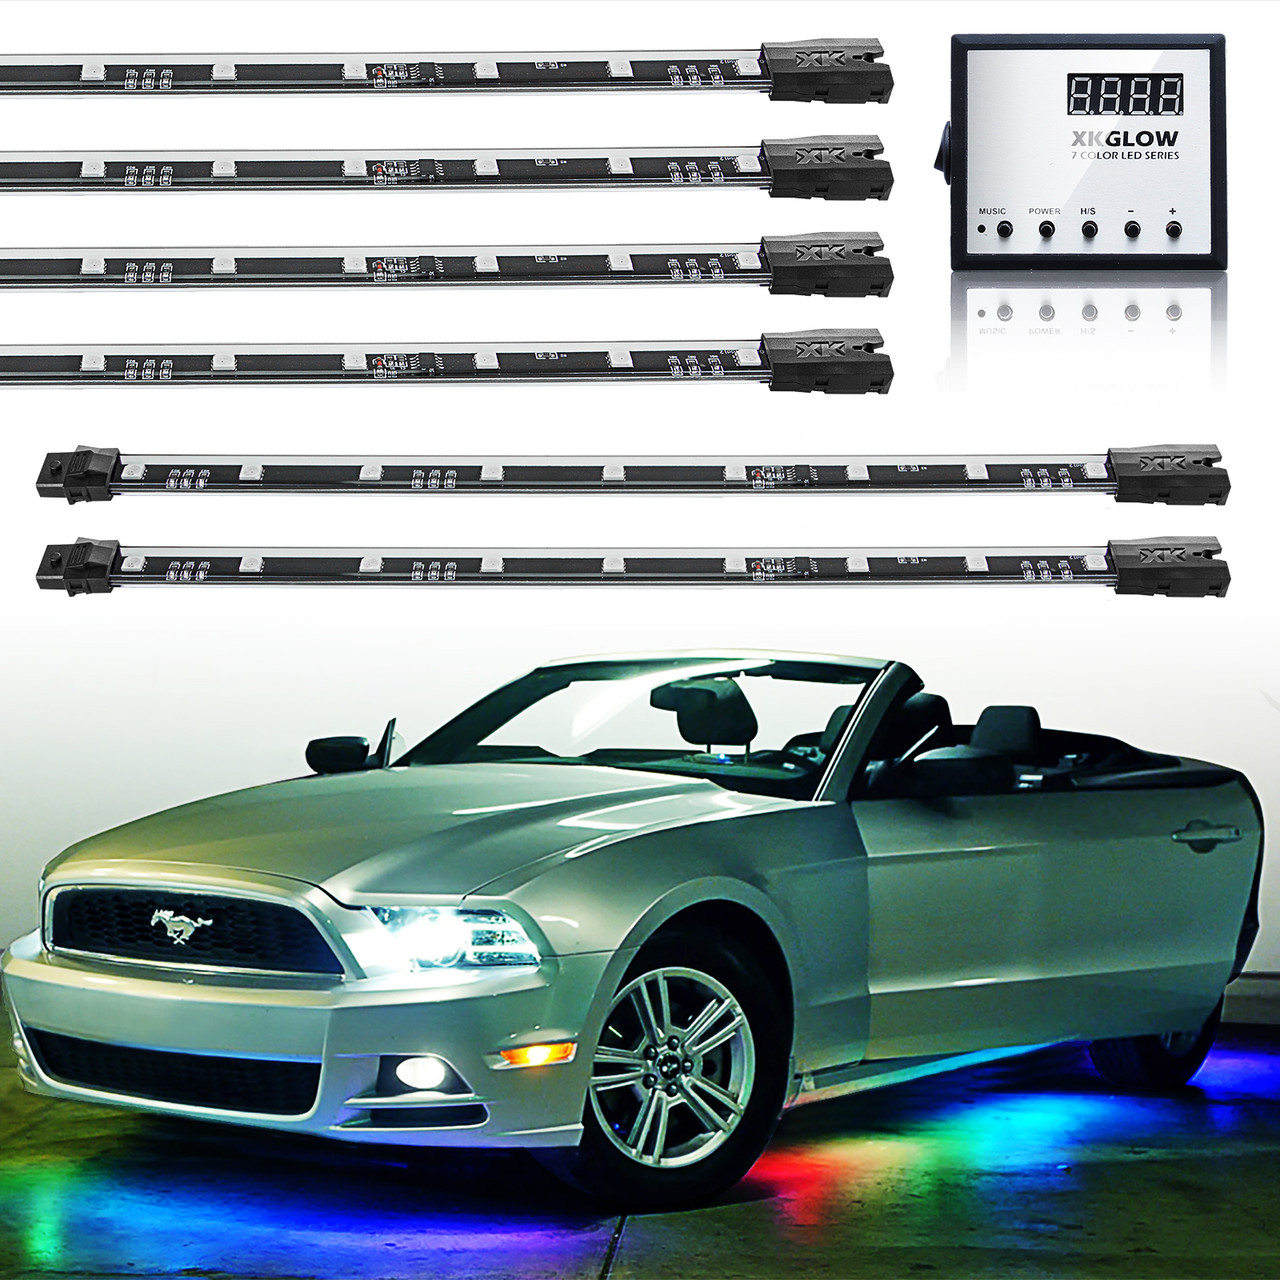 New 7 Color 8pc 24in LED Ultra Bright LED Undercar Glow Lighting 129 Mode Remote